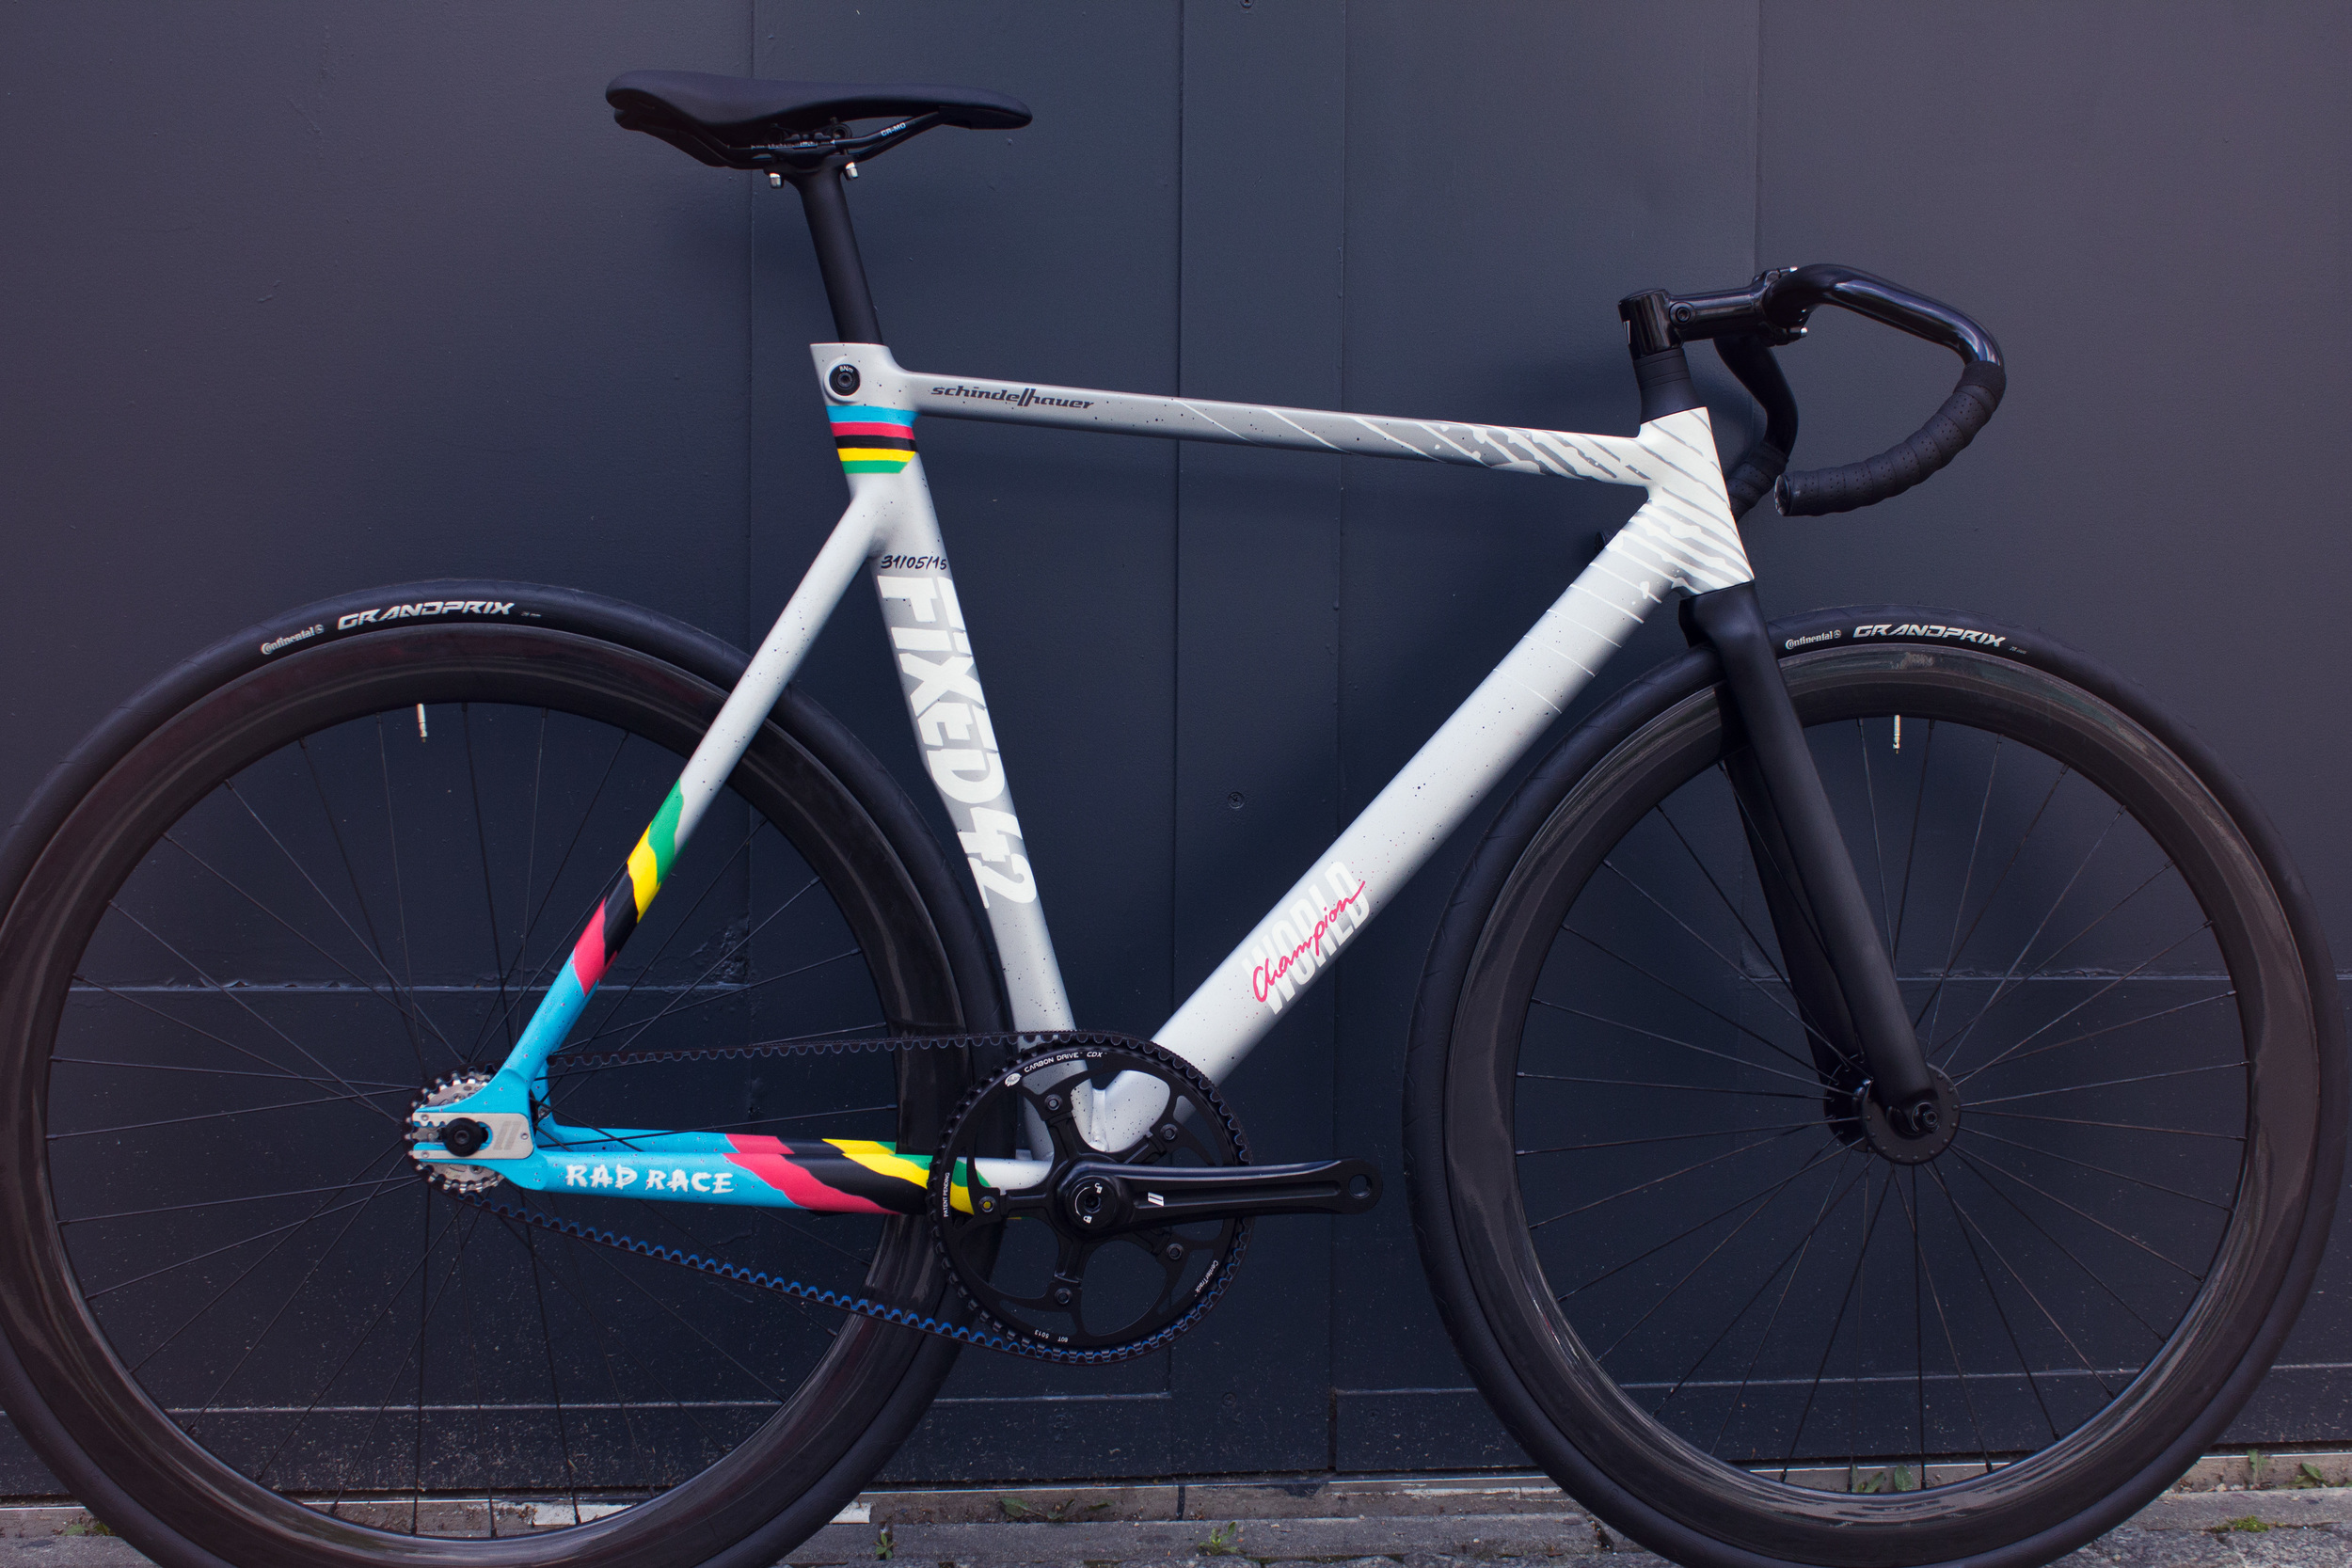 RAD RACE Fixed42 World Championship Frame Man - by Schindelhauer Bikes. Hand painted by Anna T-Iron.